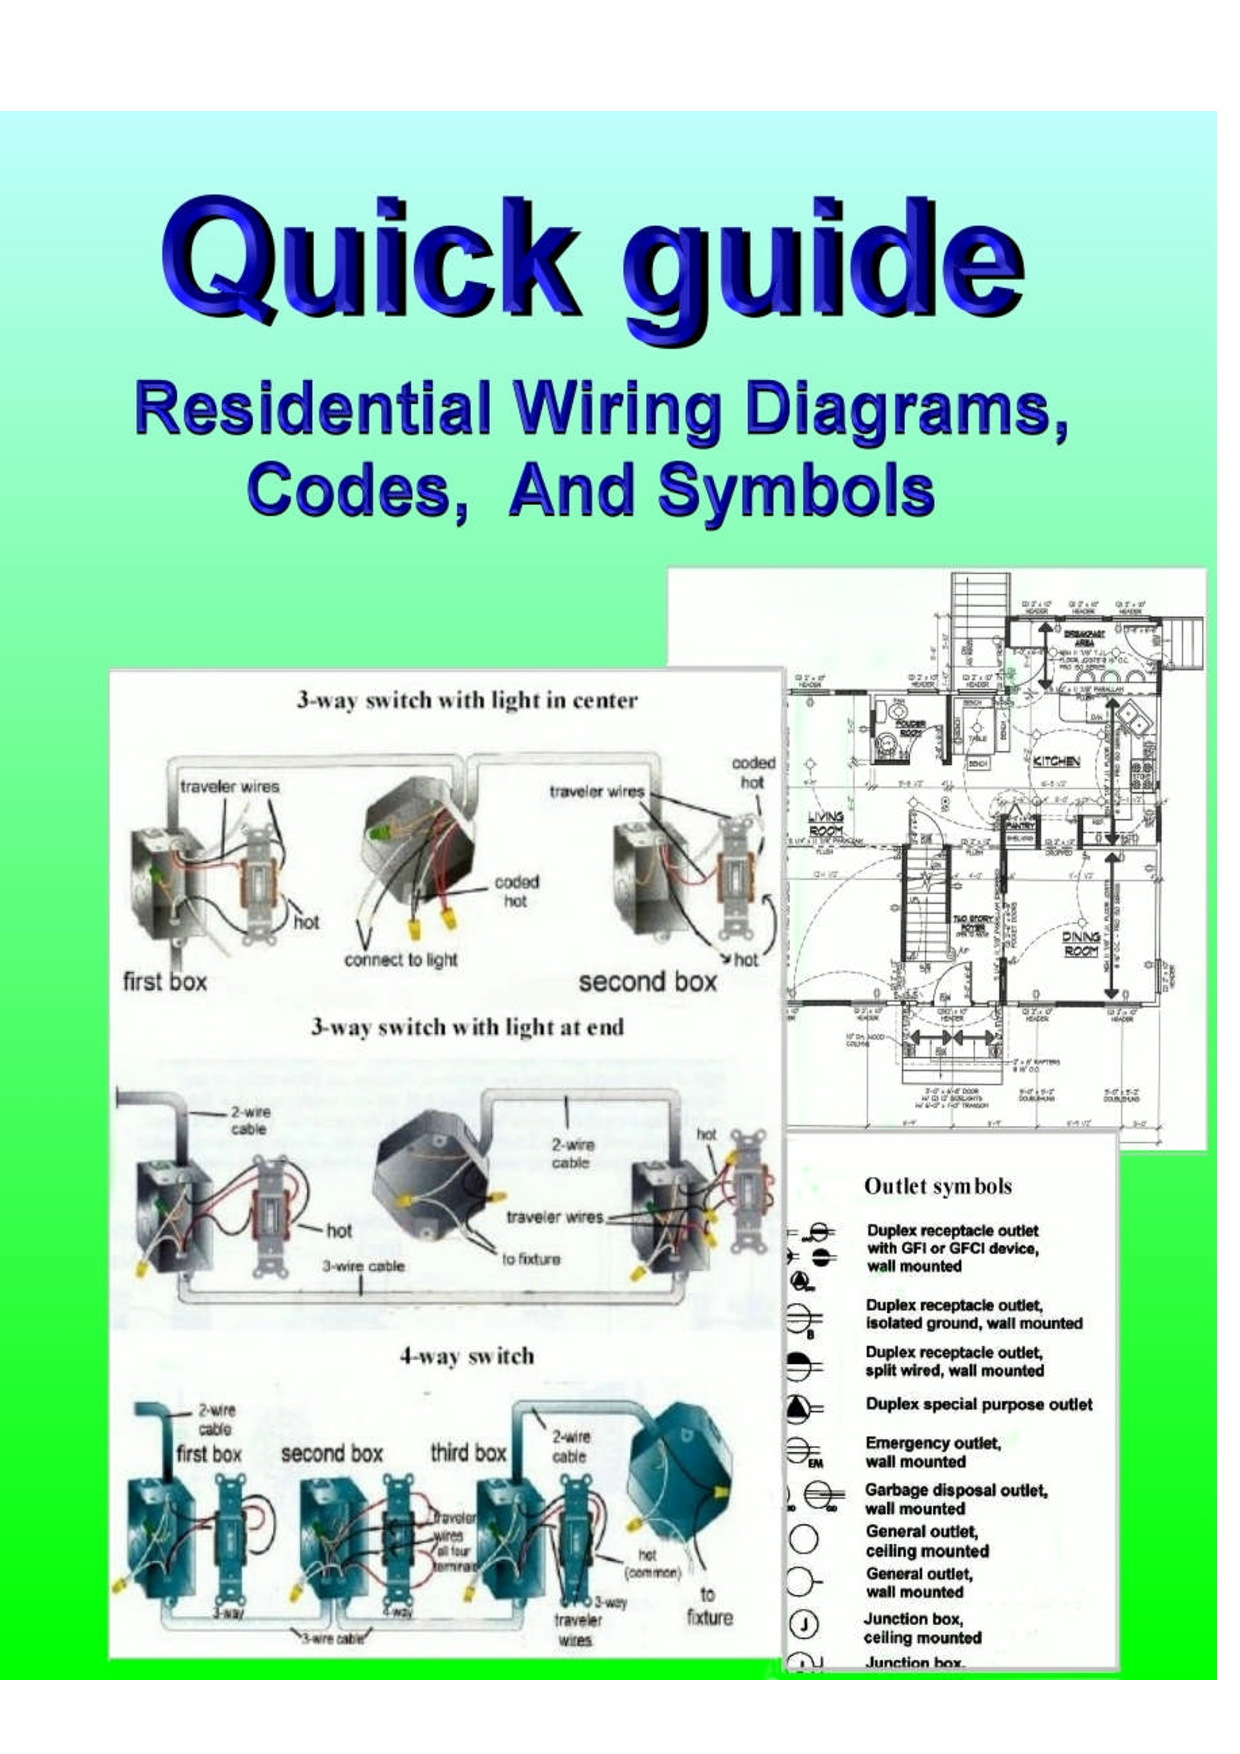 c3f403d8f667f3f3dbd14336f6c29d3e home electrical wiring diagrams visit the following link for http //www ask-the-electrician.com/switched-outlet-wiring-diagram.html at readyjetset.co